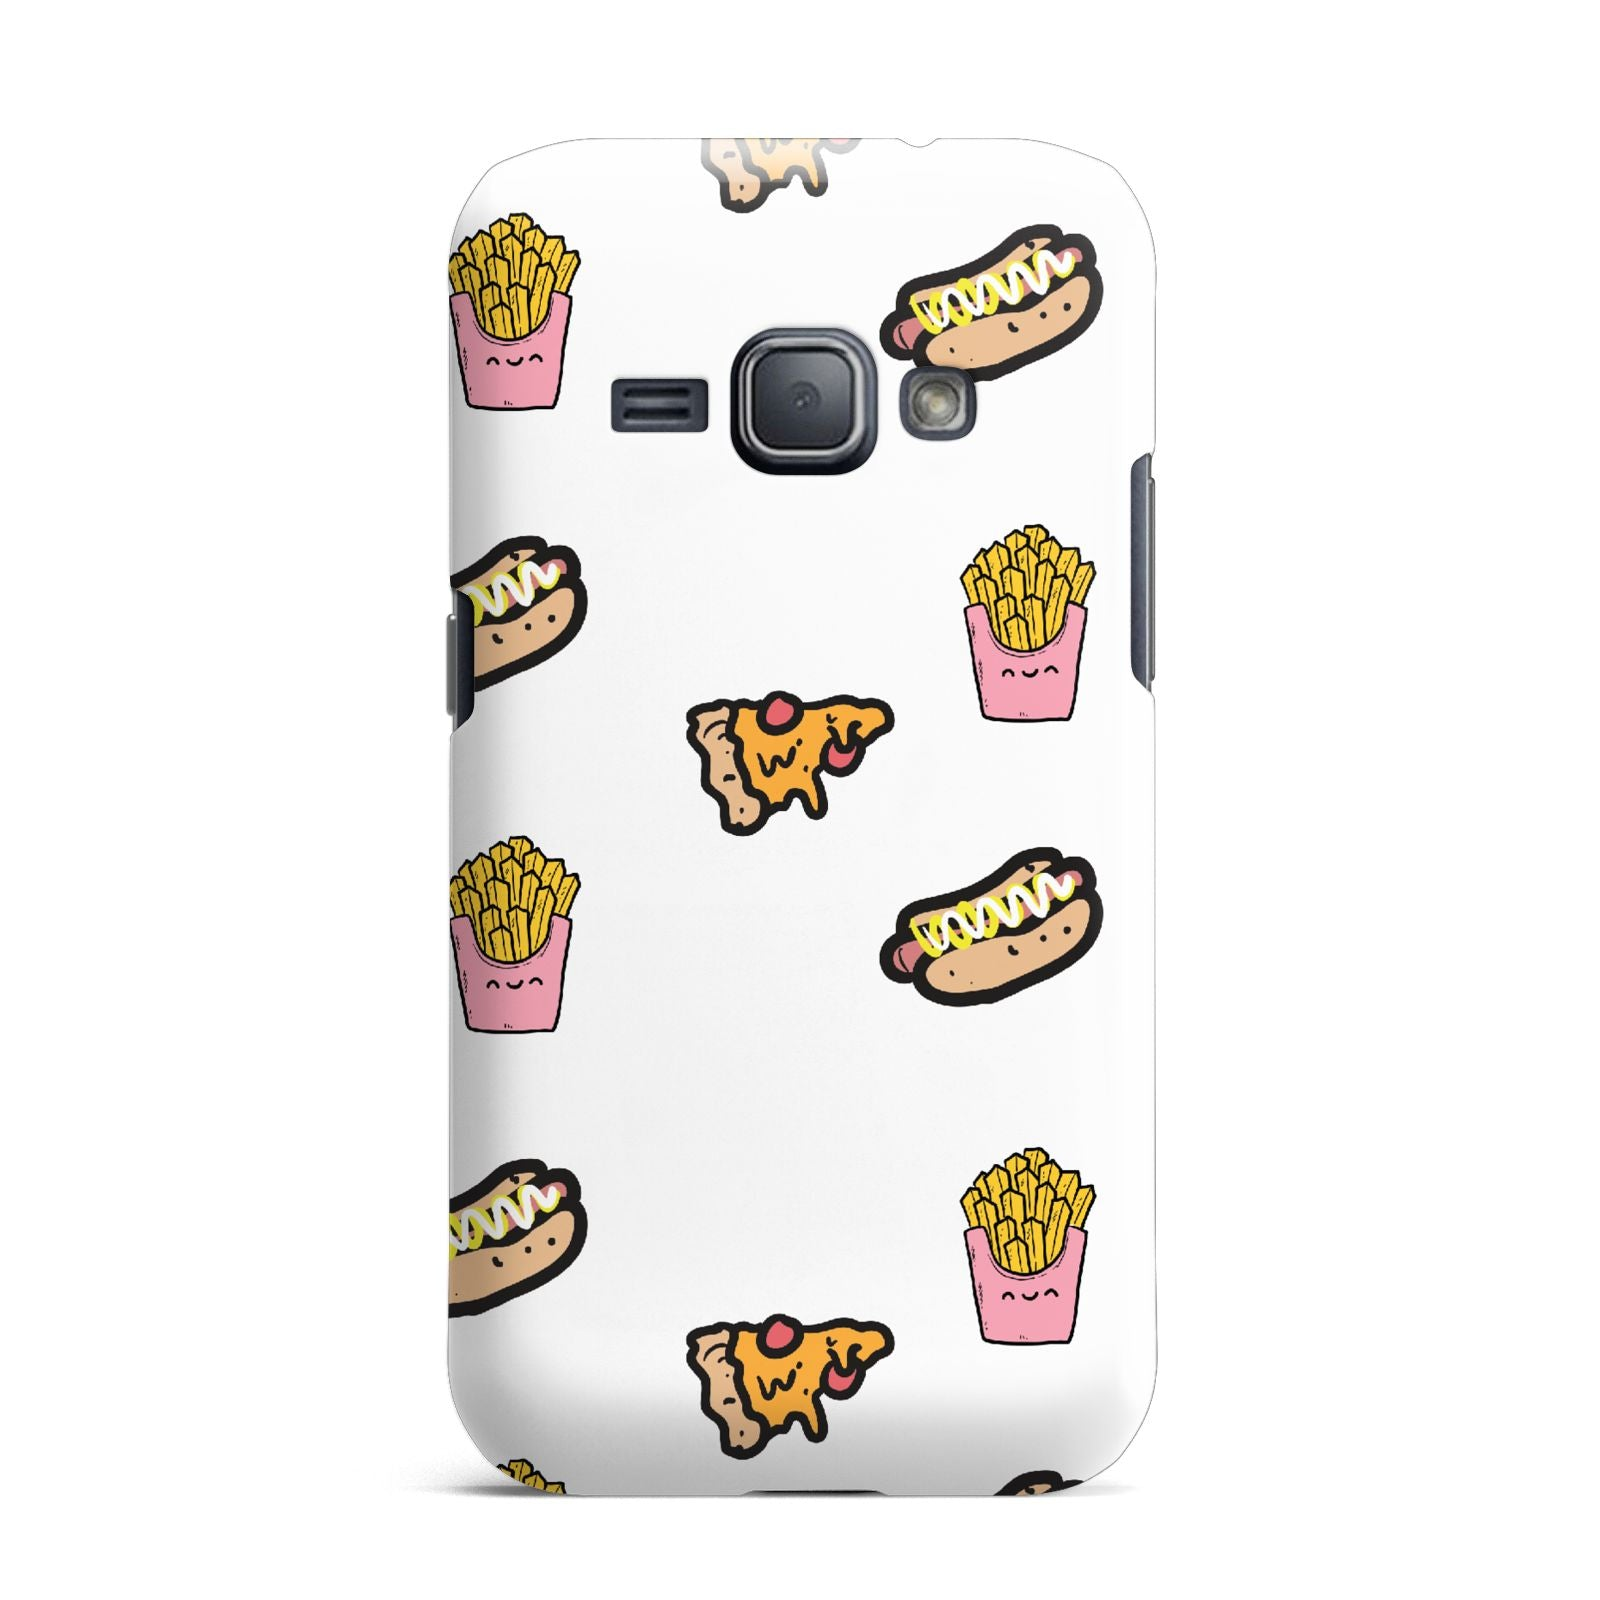 Fries Pizza Hot Dog Samsung Galaxy J1 2016 Case